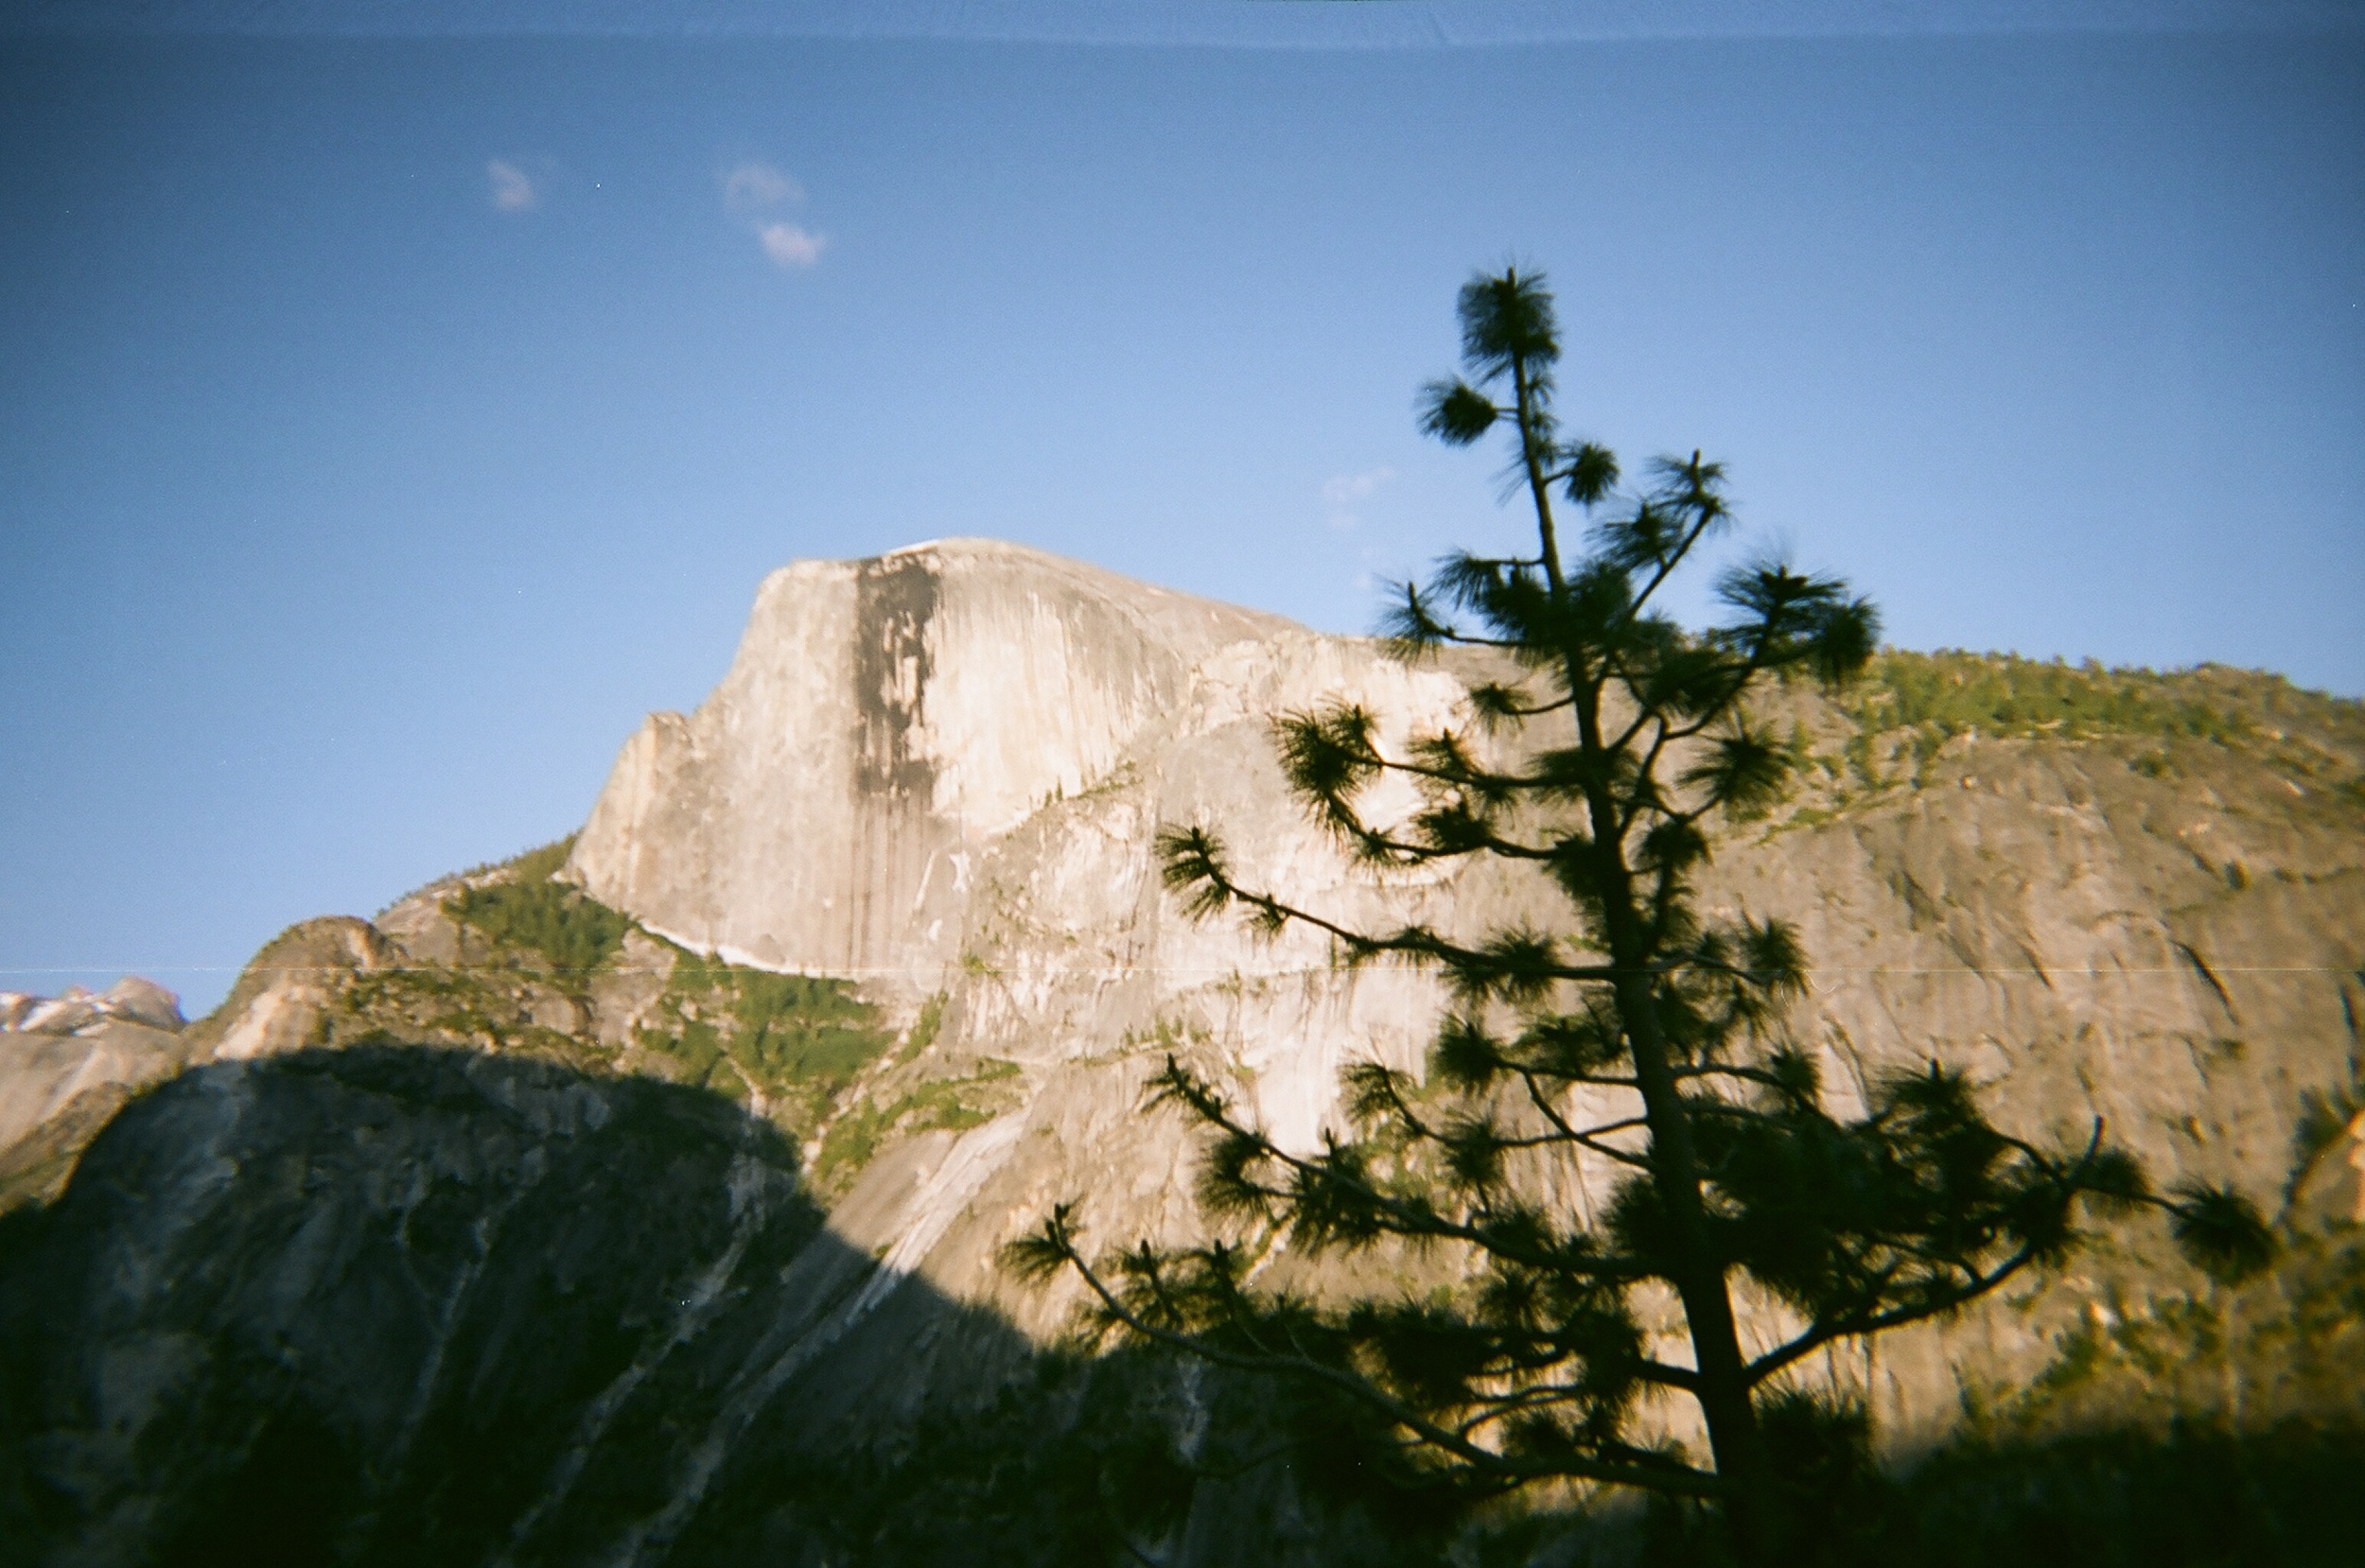 Cheap_analog_camera_pictures_002.JPG